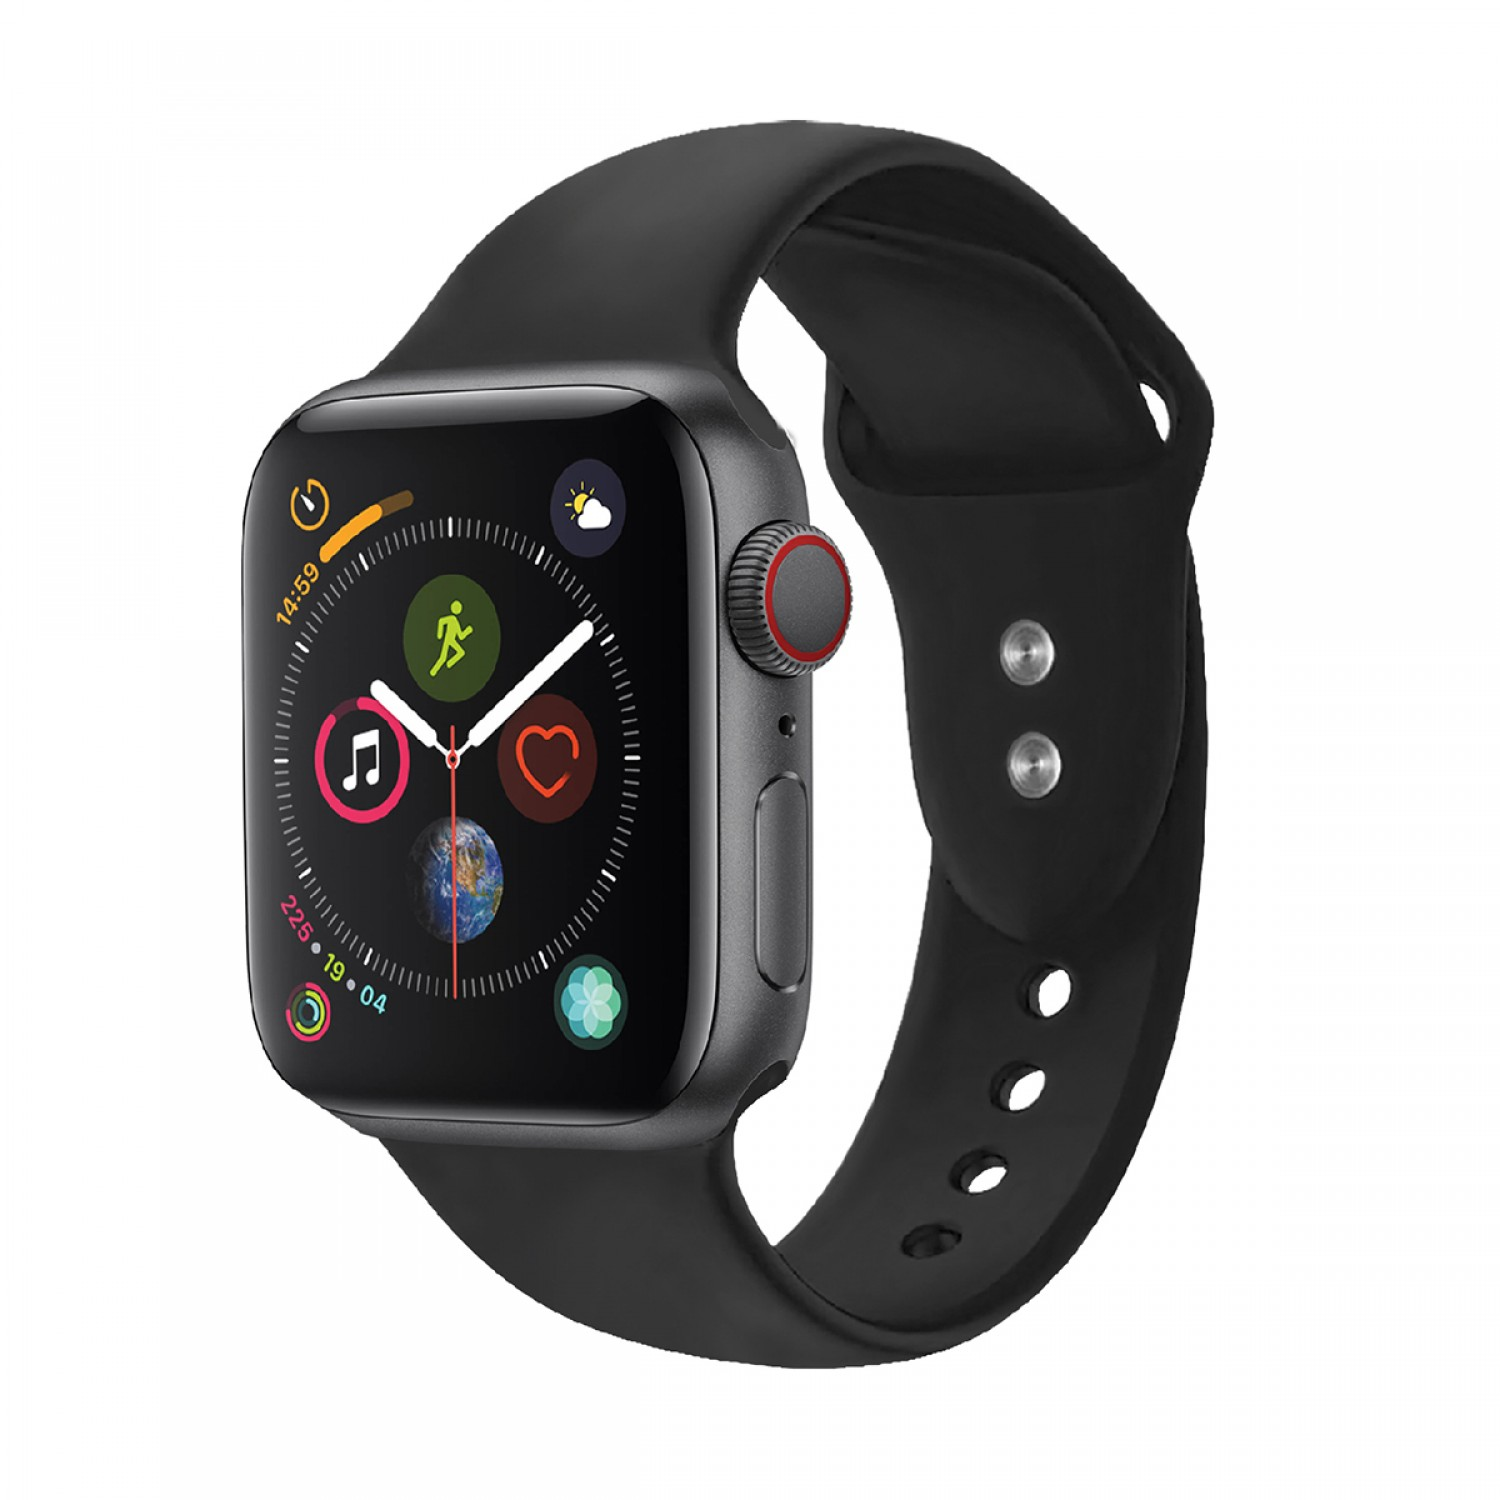 Promate Silicone Apple Watch 38mm/40mm Strap, Premium Adjustable Silicone Sport Wristband Replacement Strap with Sweatproof and Dual Lock Pin for Apple Watch Series 1,2,3 and 4 Medium/Large Size, Workout, Fitness, Oryx-38ML Black